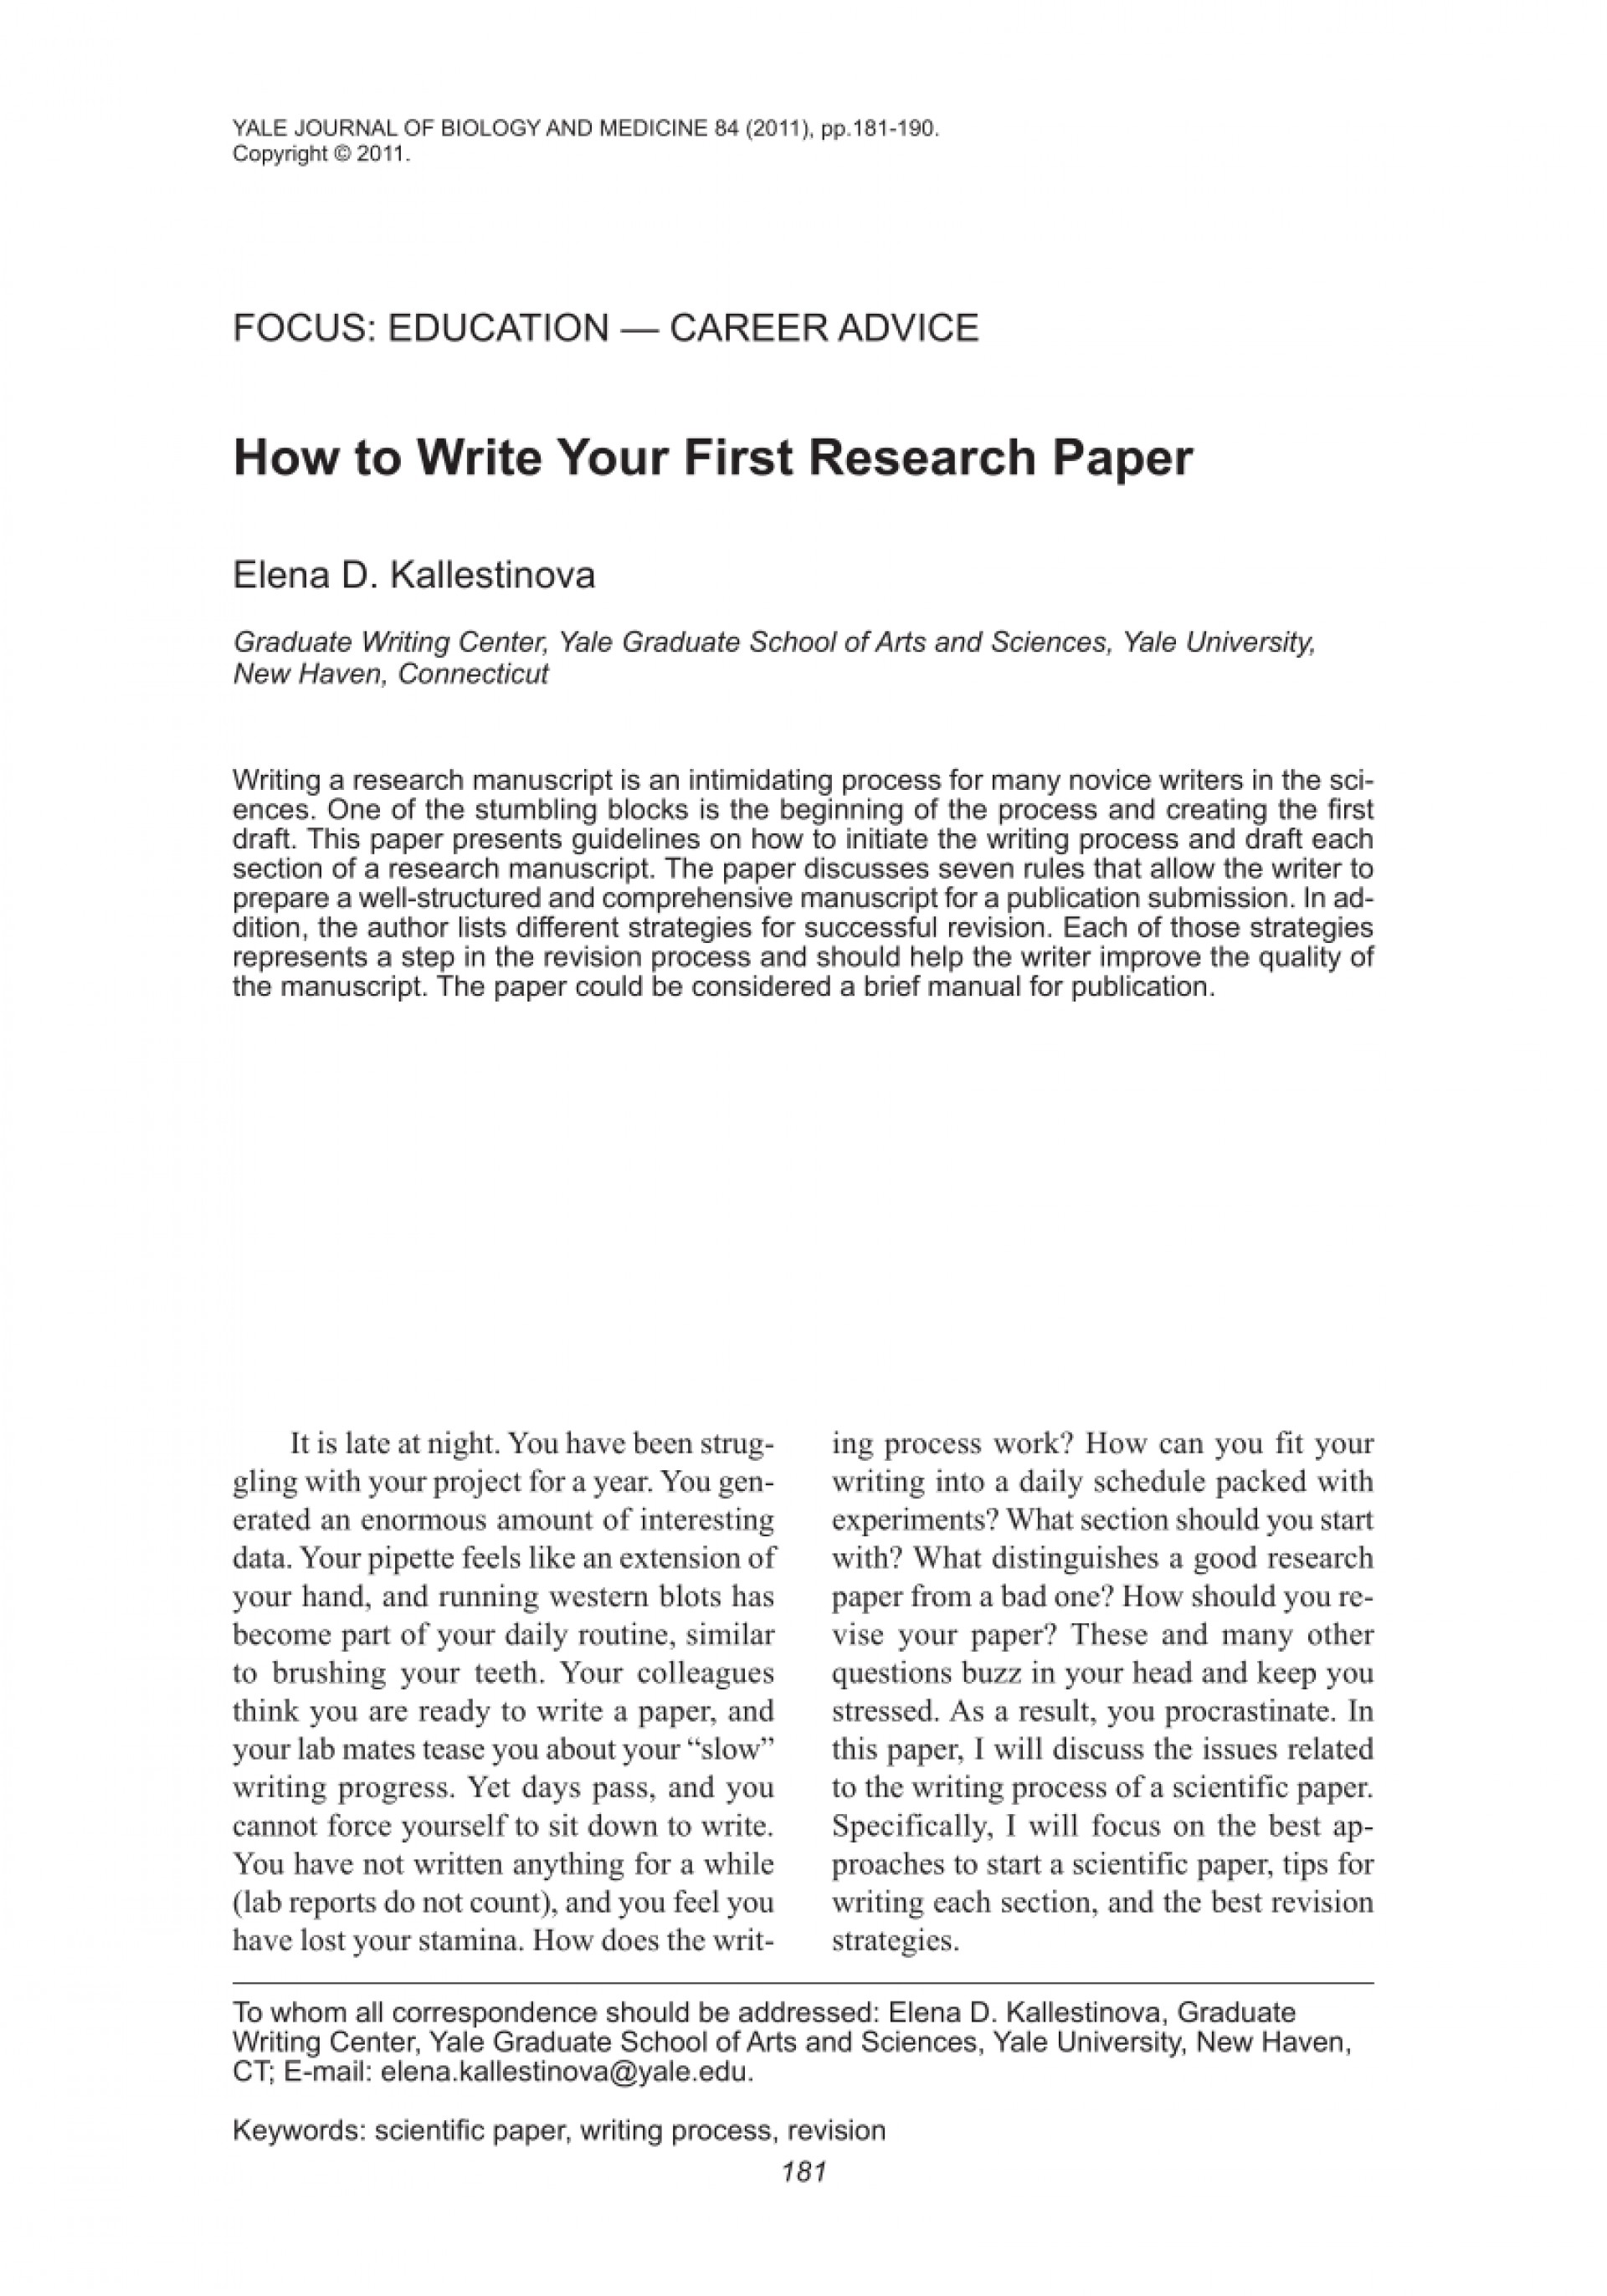 017 Largepreview Research Paper Biology Impressive Outline How To Write A 1920